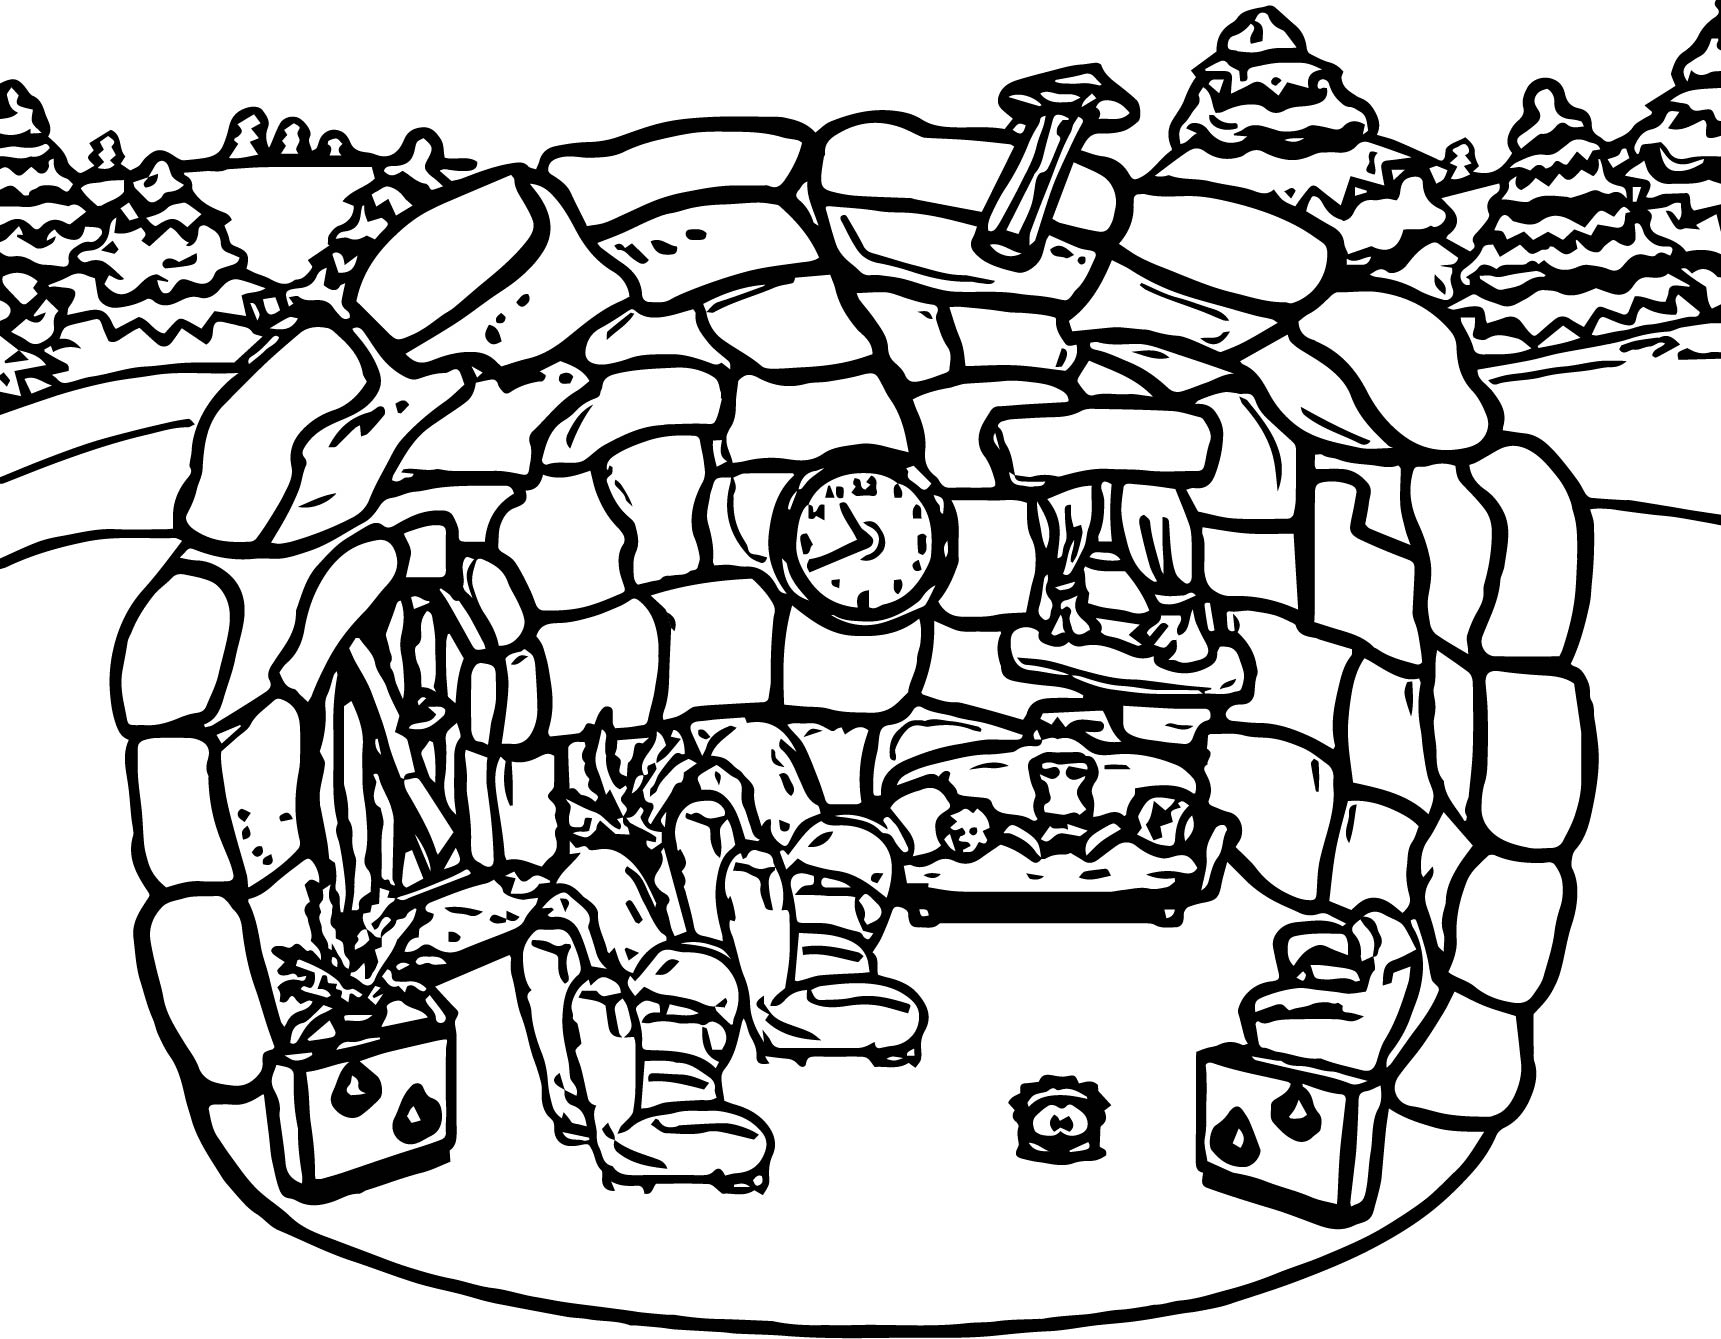 Club penguin room coloring page for Club penguin coloring page